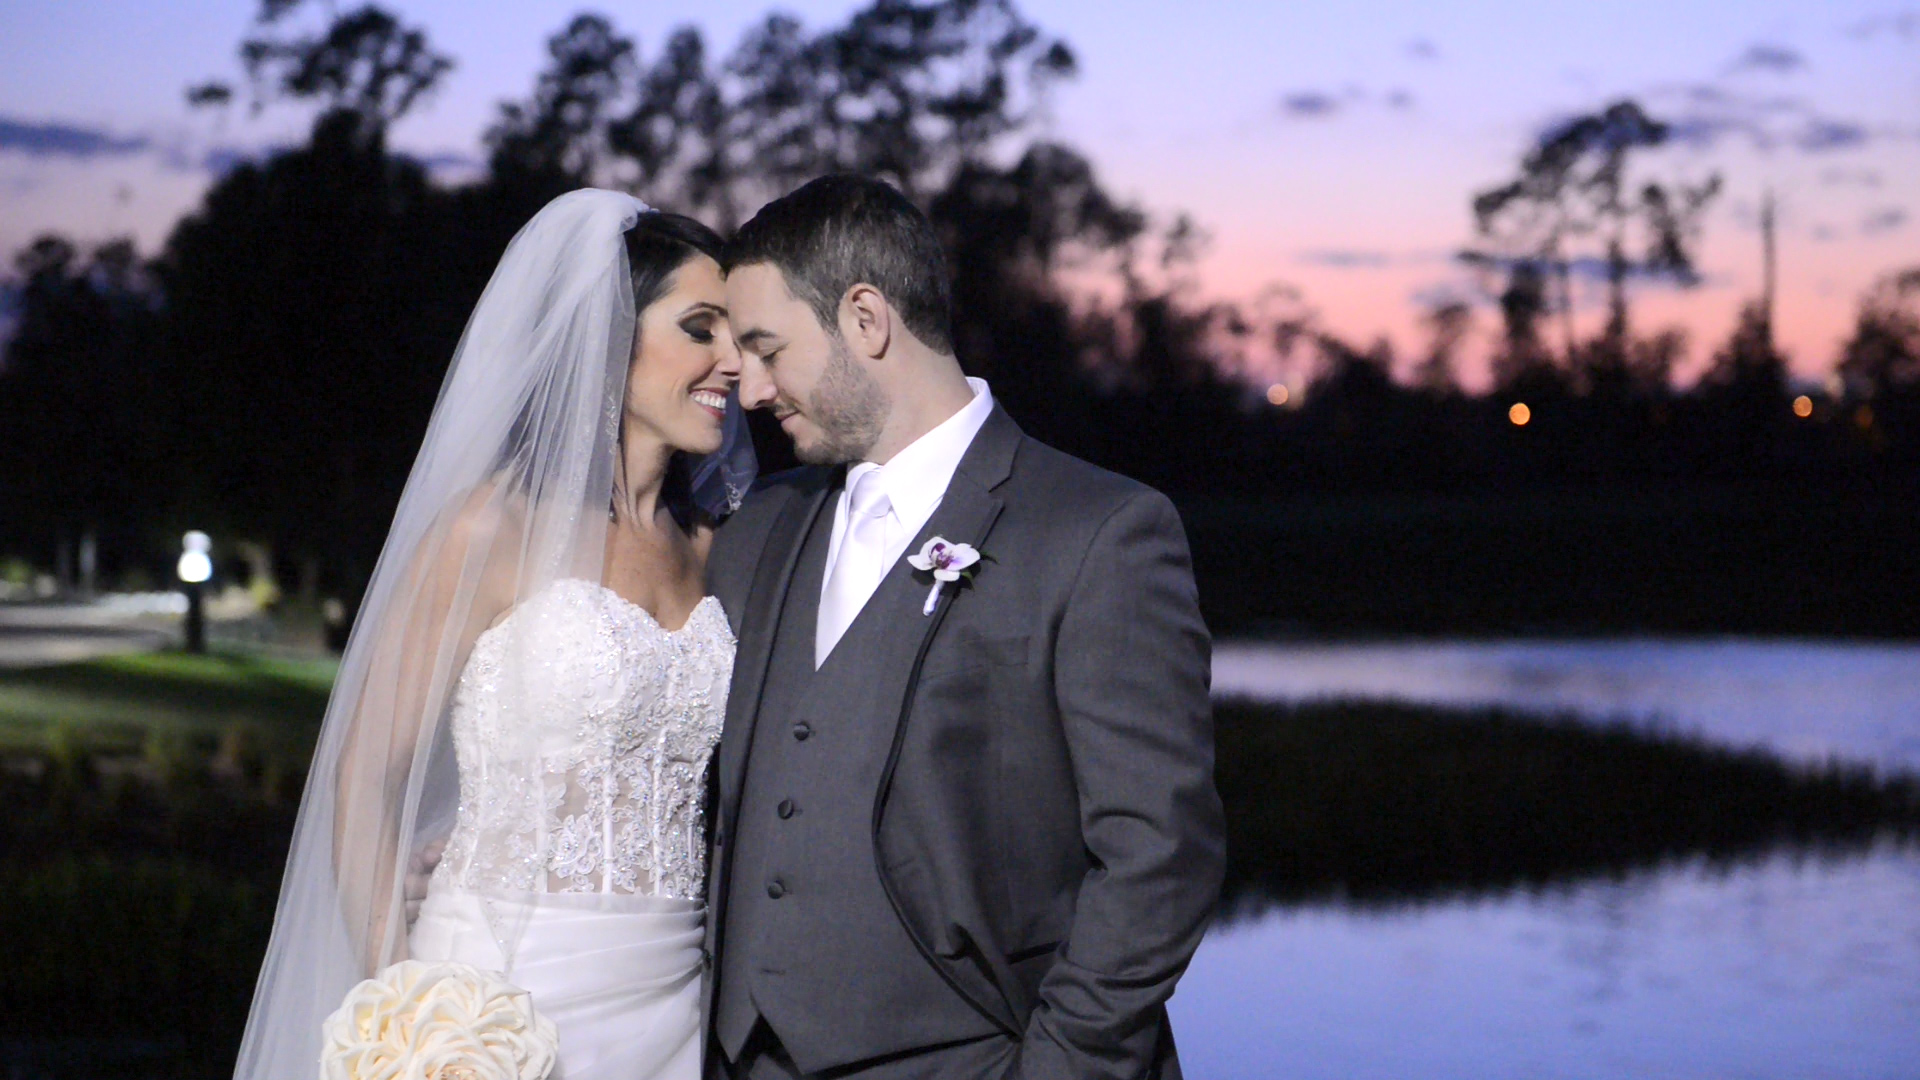 Jessica & David Married at Waldorf Astoria Orlando